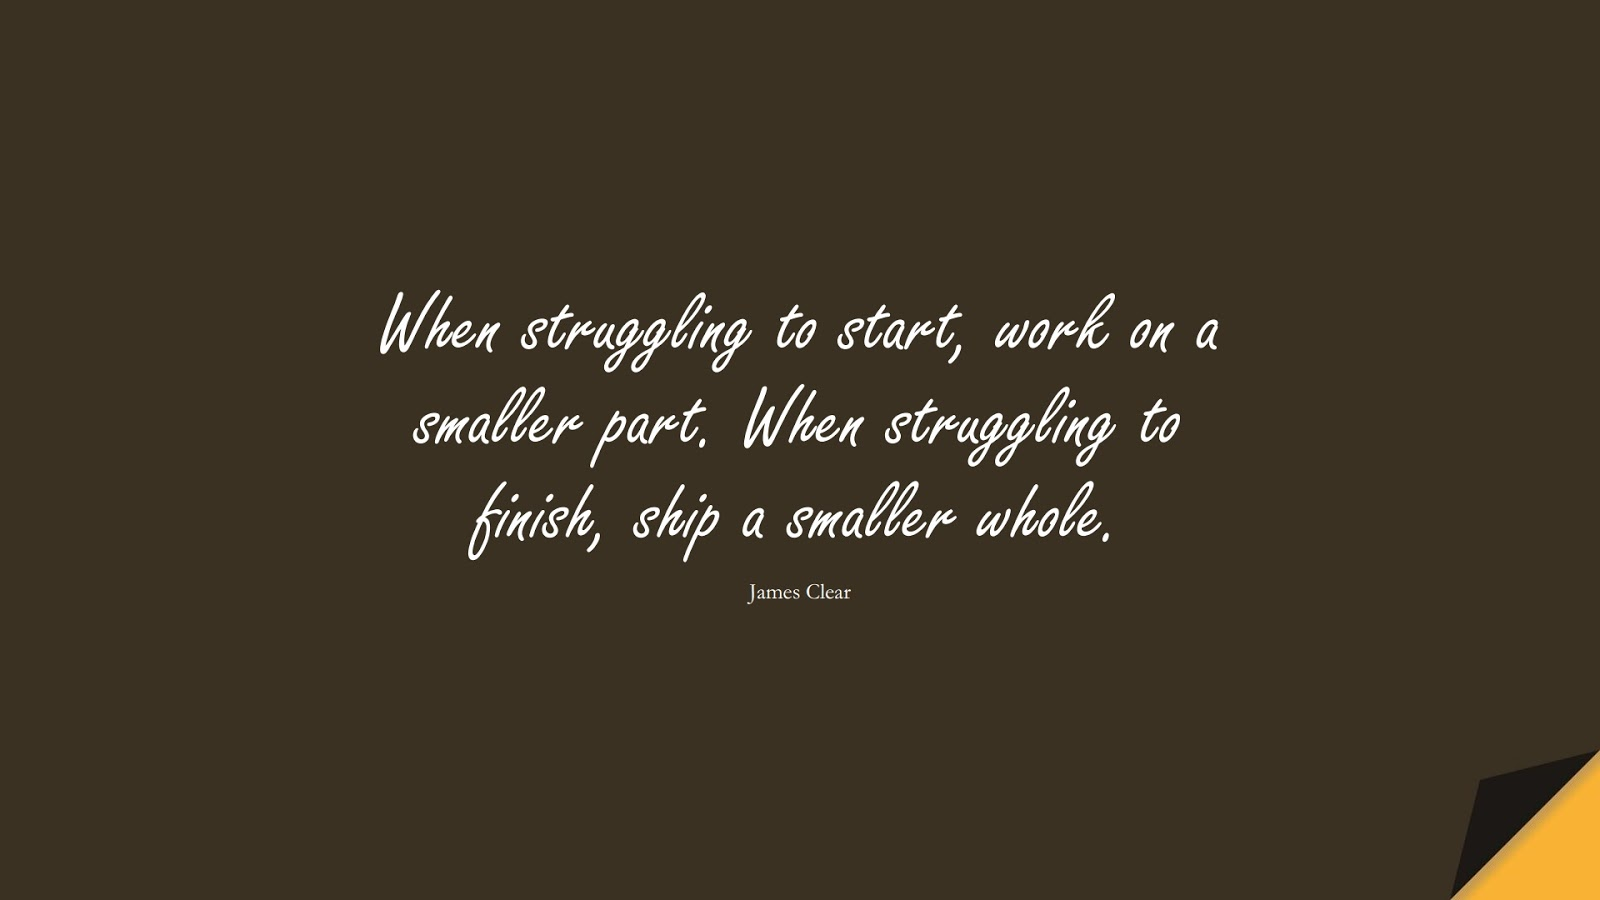 When struggling to start, work on a smaller part. When struggling to finish, ship a smaller whole. (James Clear);  #EncouragingQuotes